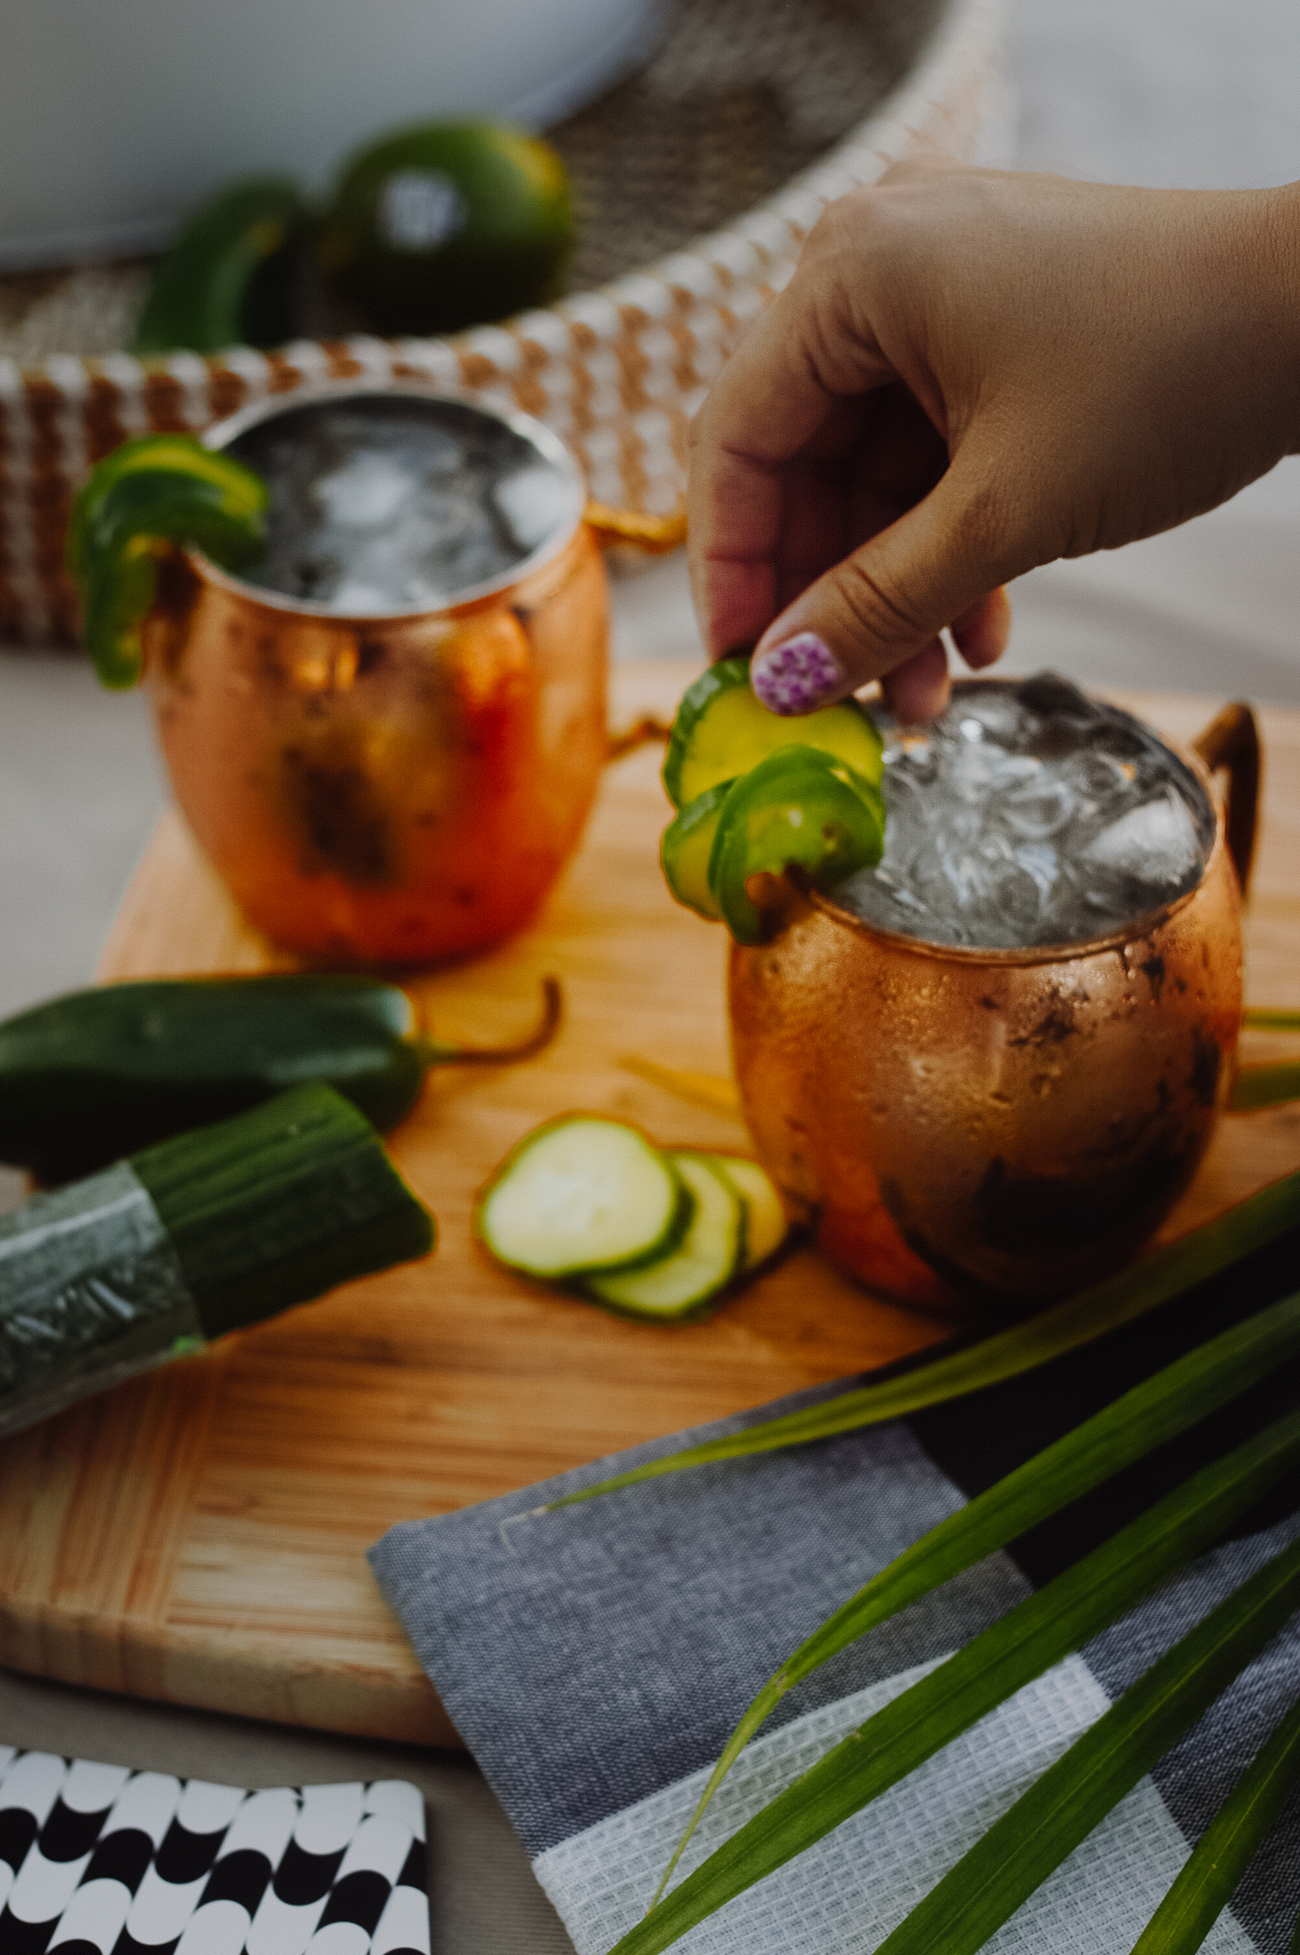 Jalapeño-Cucumber Mule: A new Twist on a Classic Cocktail via. Birdie Shoots | www.birdieshoots.com